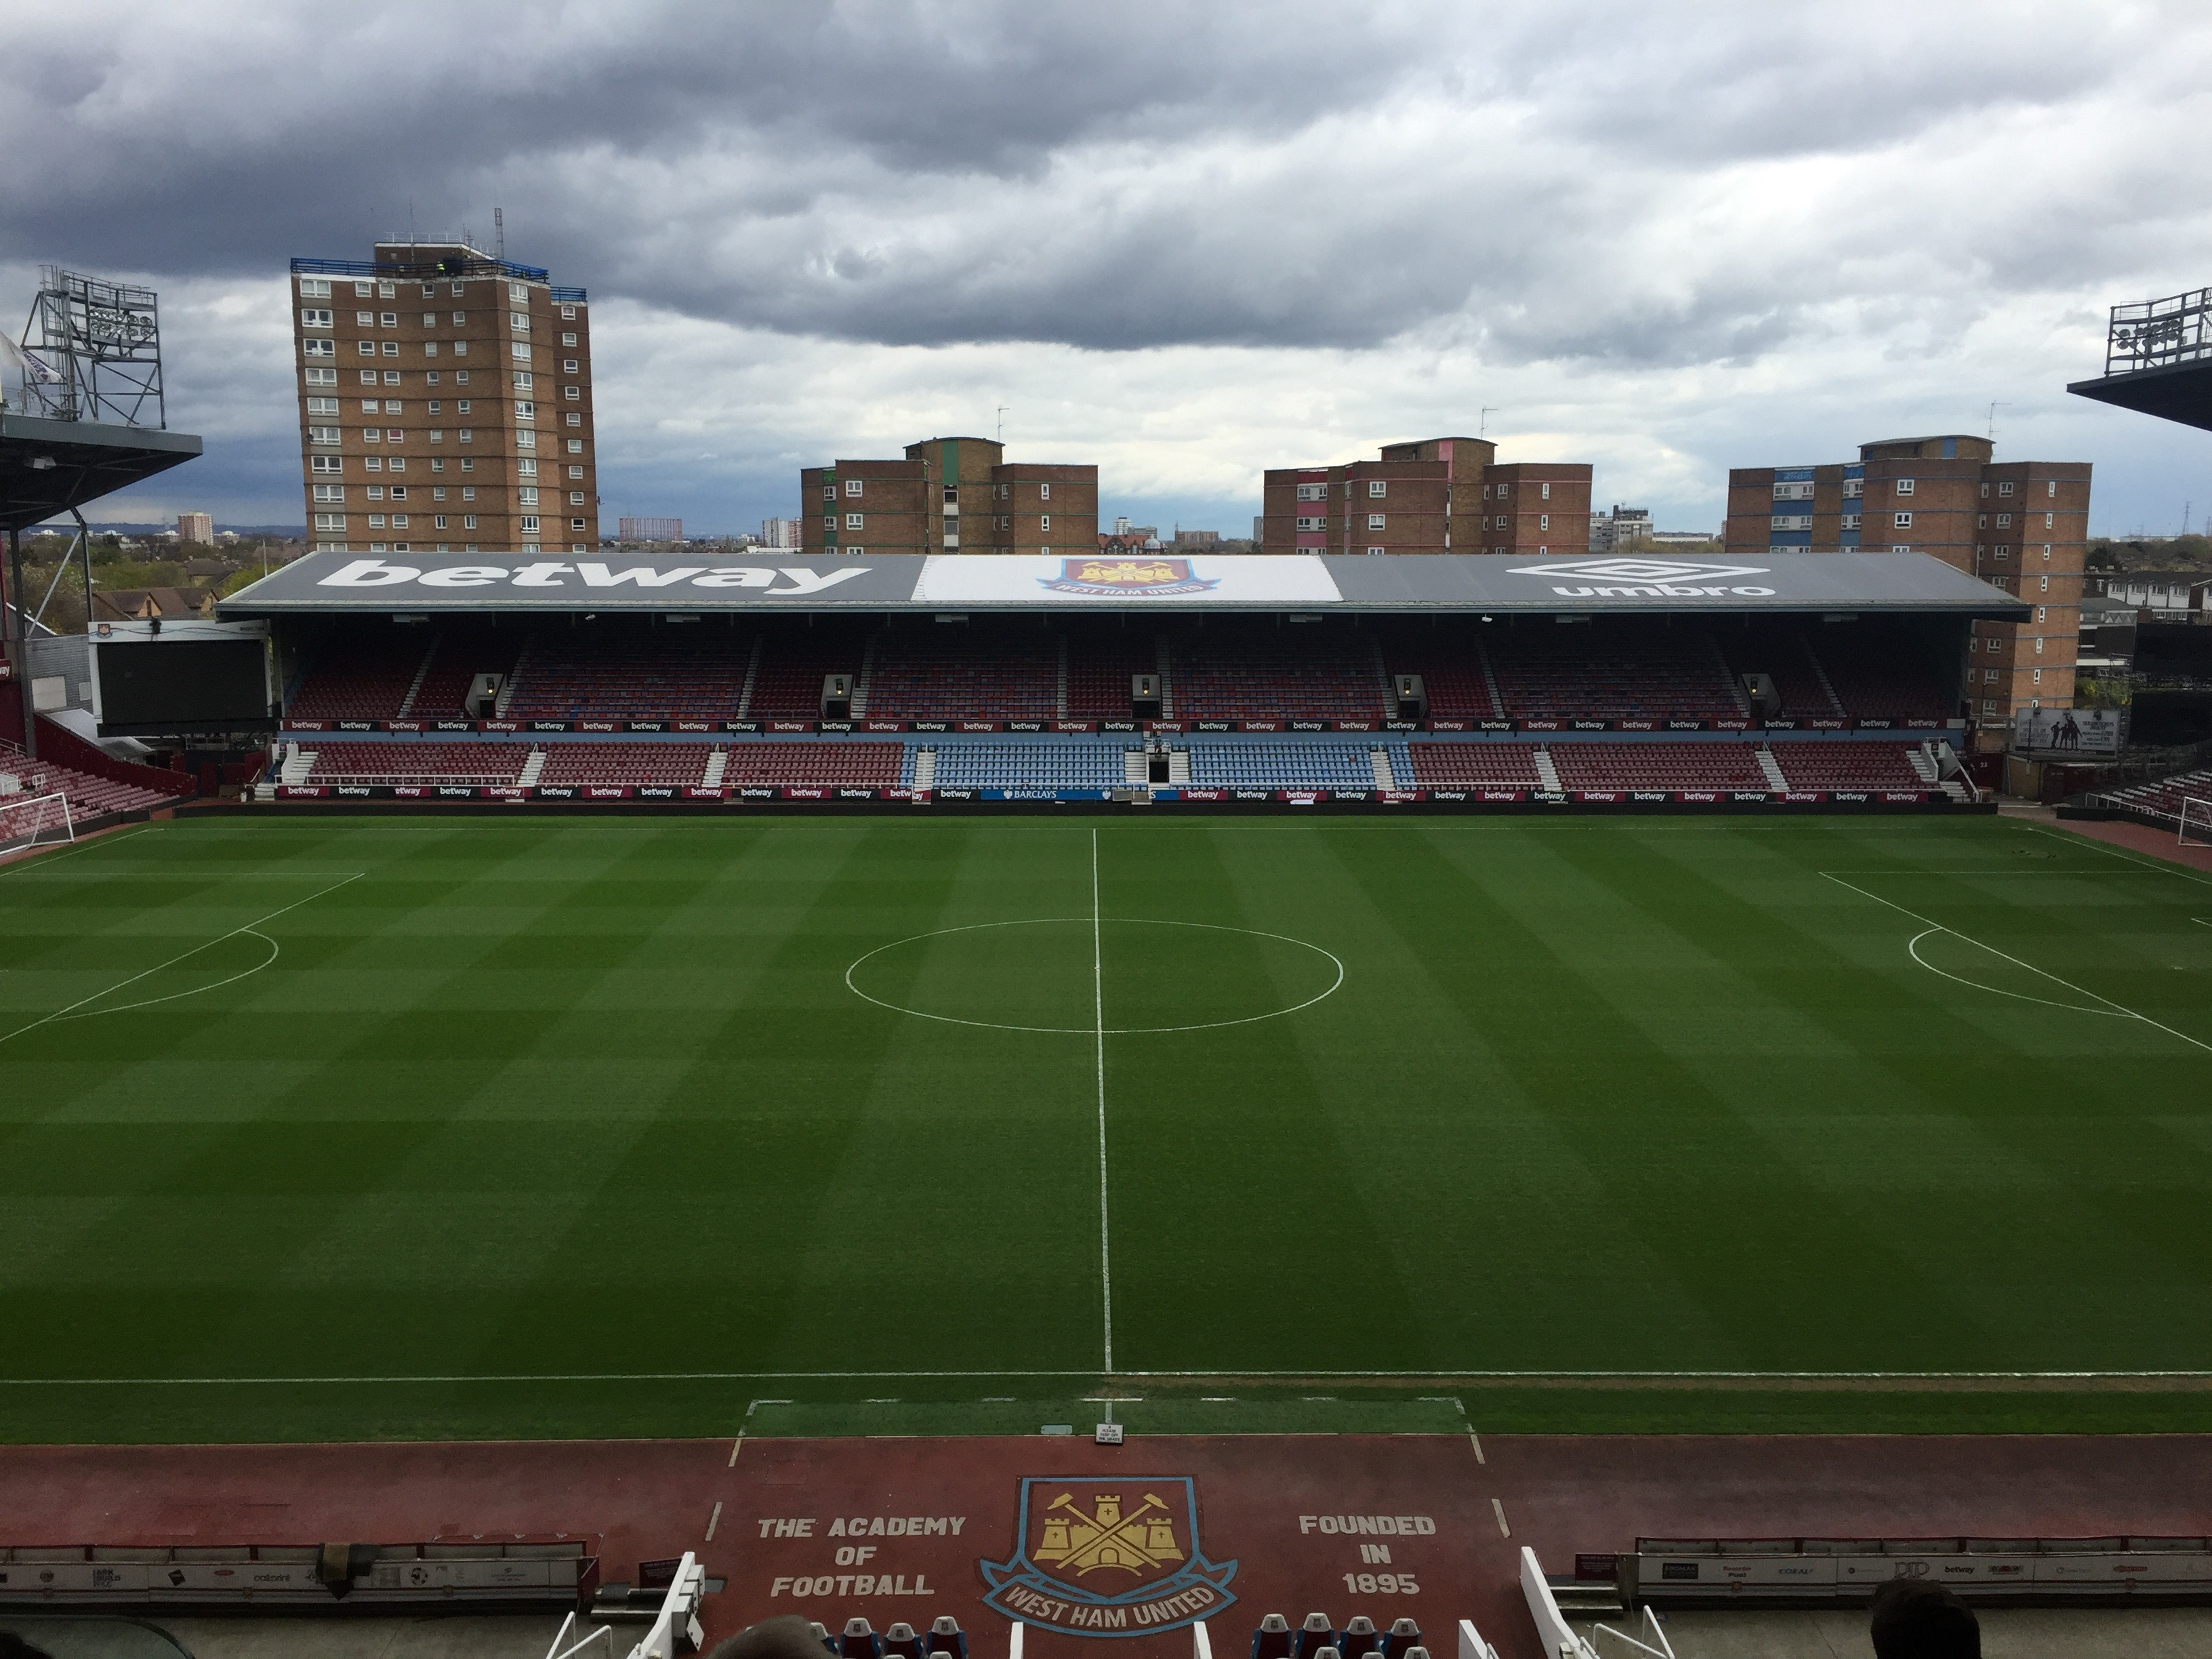 A view of the pitch